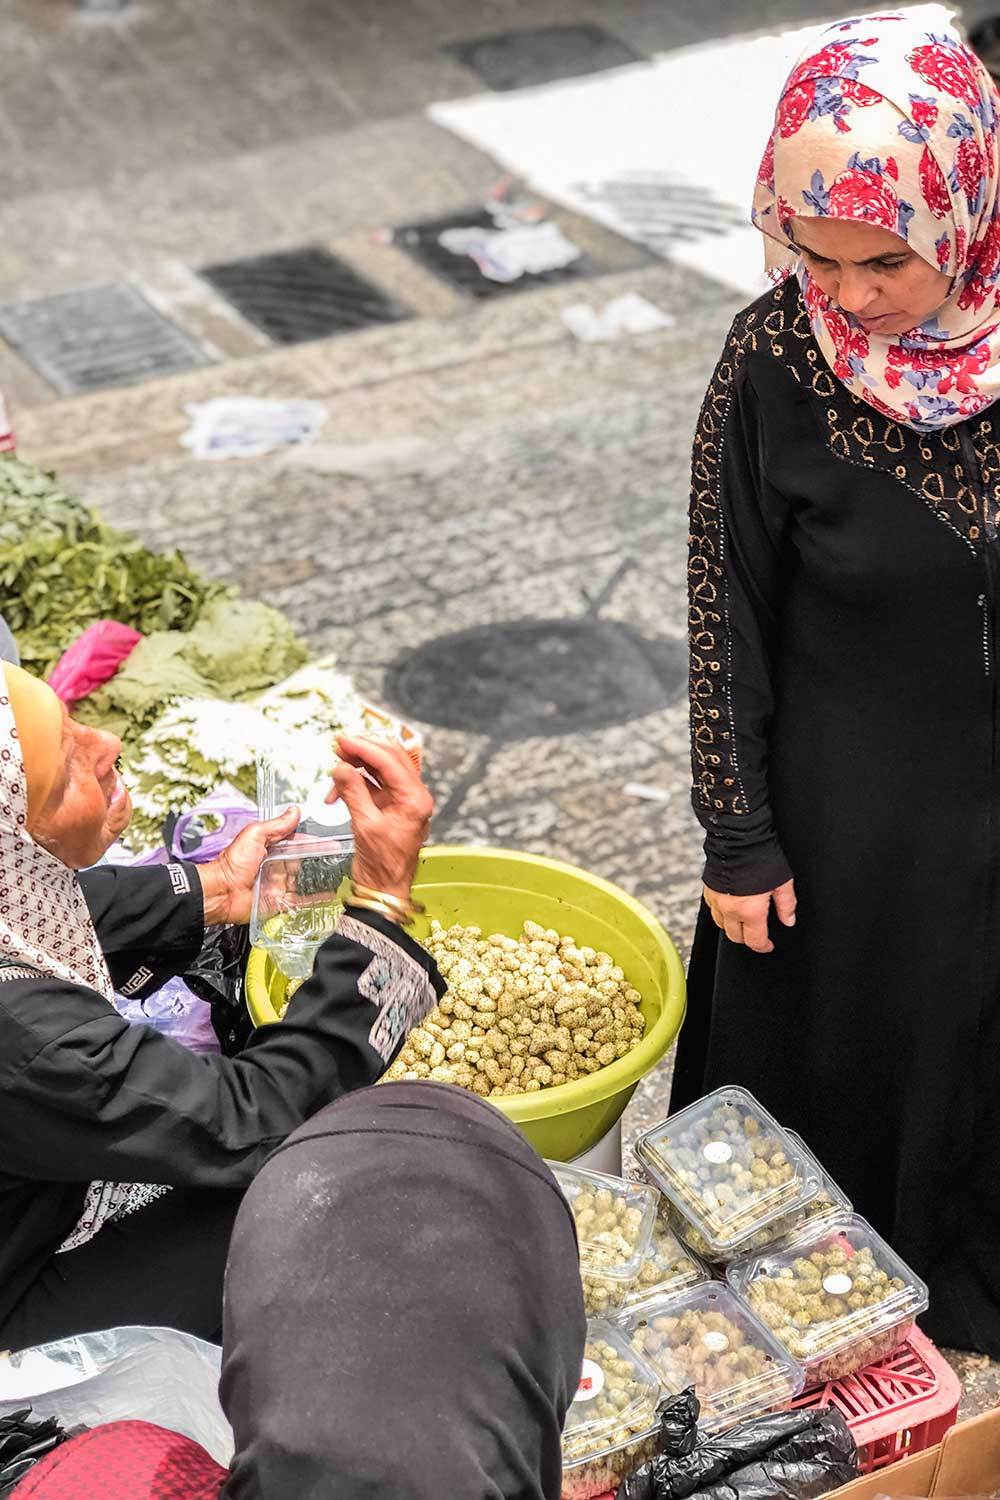 Women selling fruit and nuts at the entrance of the Arab Market